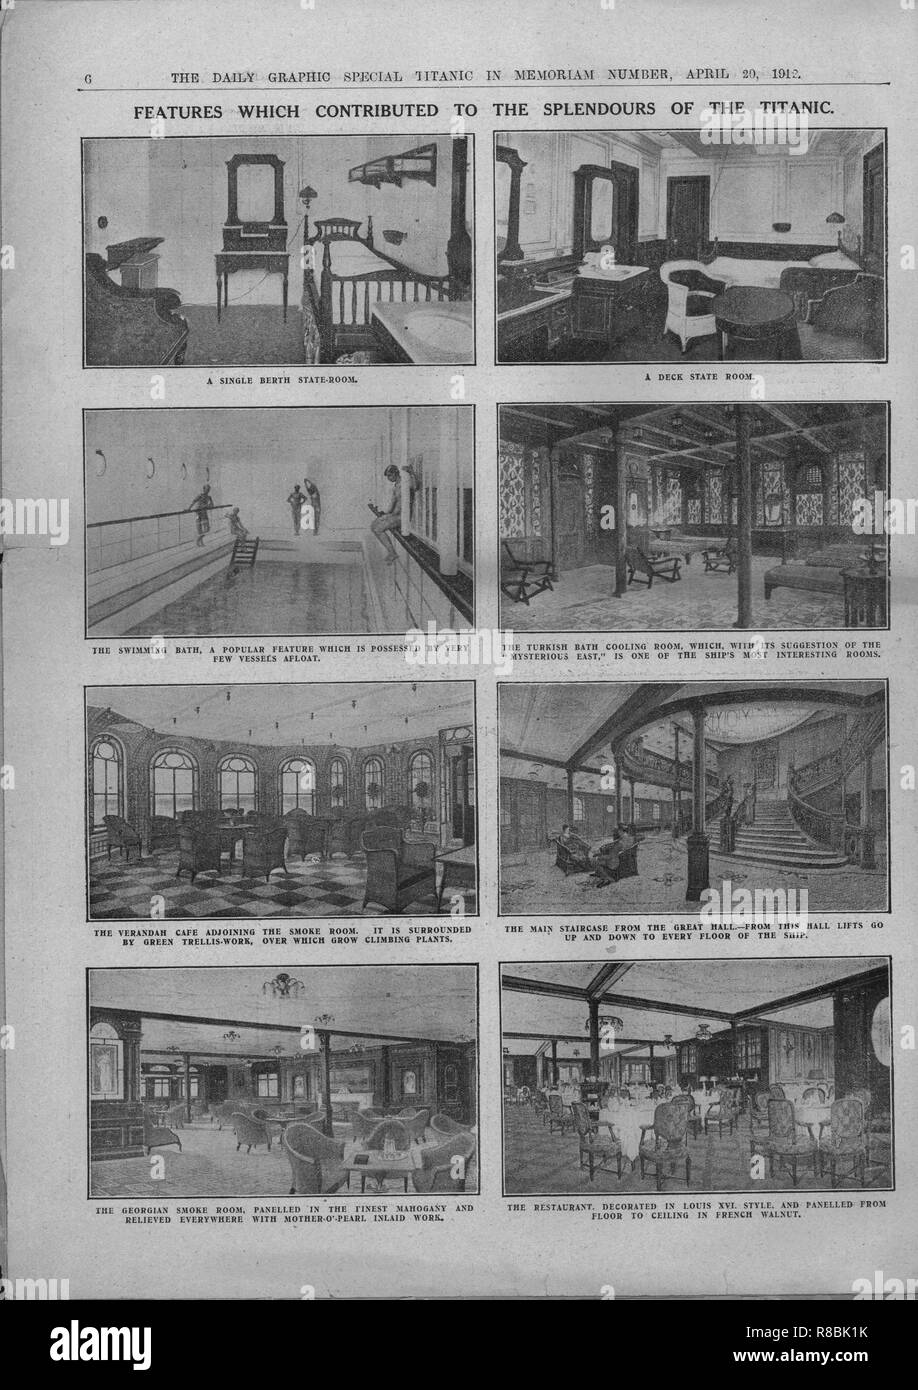 'Features which Contributed to the Splendours of the Titanic', April 20, 1912. A single-berth state room, a deck state room, the swimming pool, the Turkish Bath Cooling Room, the Verandah Cafe, the main staircase, the Georgian Smoke Room and the restaurant. The luxurious interior decoration included French walnut panelling, mother-of-pearl inlay and climbing plants. The White Star Line ship RMS 'Titanic' struck an iceberg in thick fog off Newfoundland on 14 April 1912. She was the largest and most luxurious ocean liner of her time, and thought to be unsinkable. In the collision, five of her wa - Stock Image